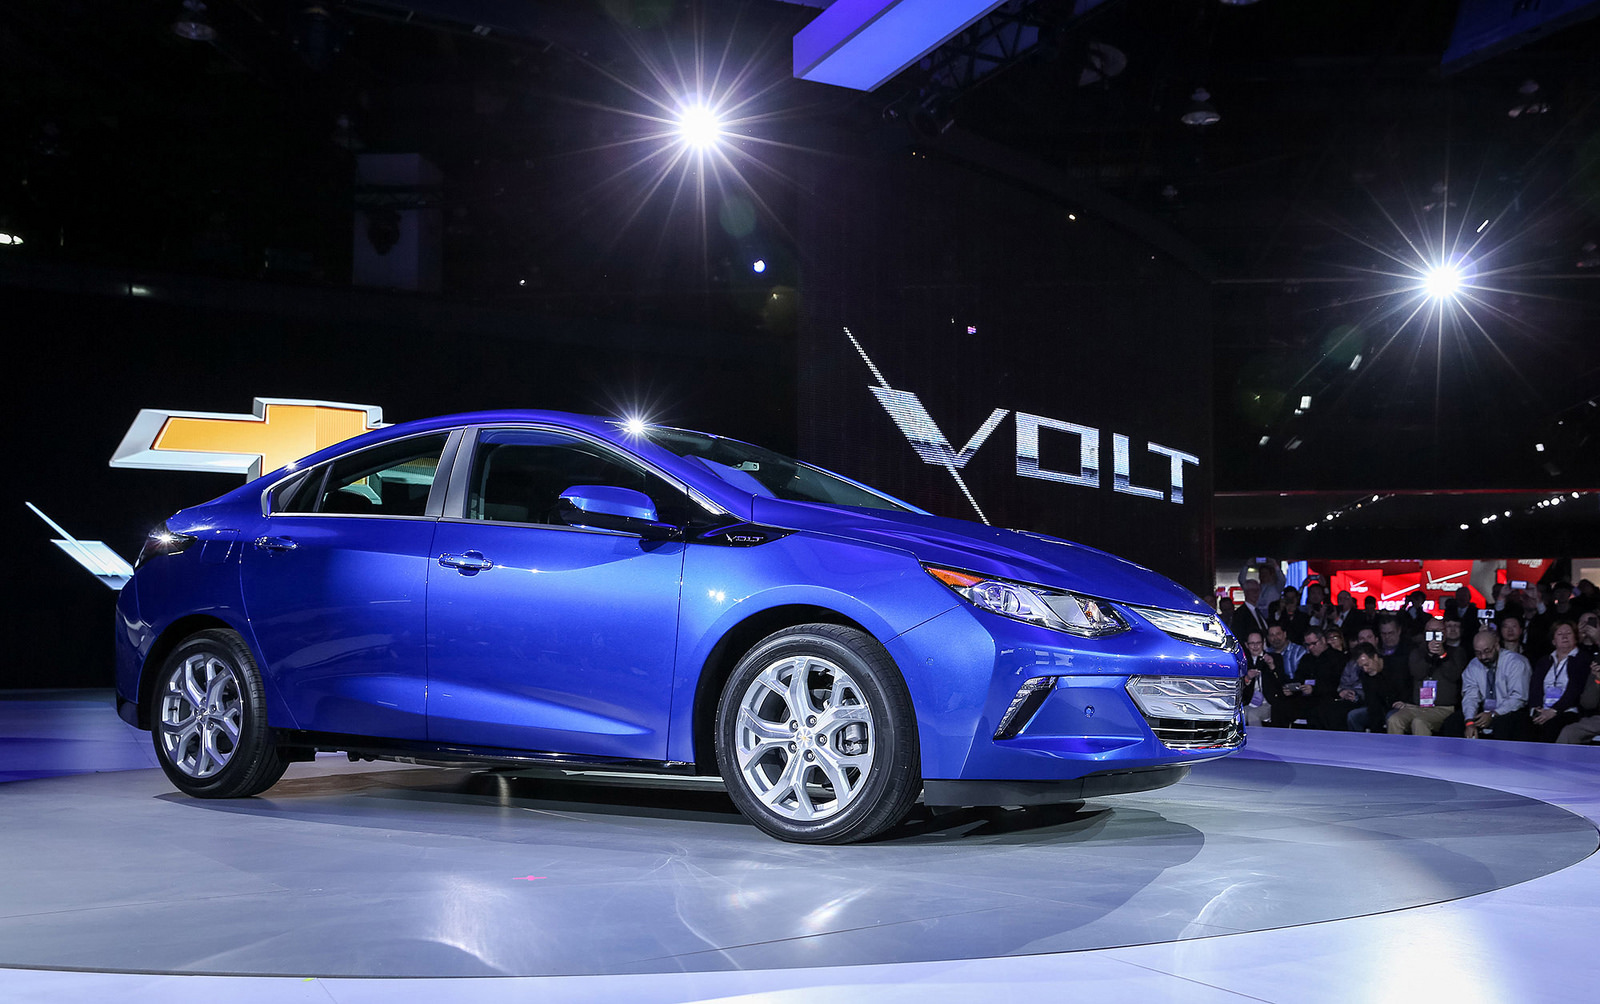 details emerge of 2017 chevy volt the news wheel. Black Bedroom Furniture Sets. Home Design Ideas